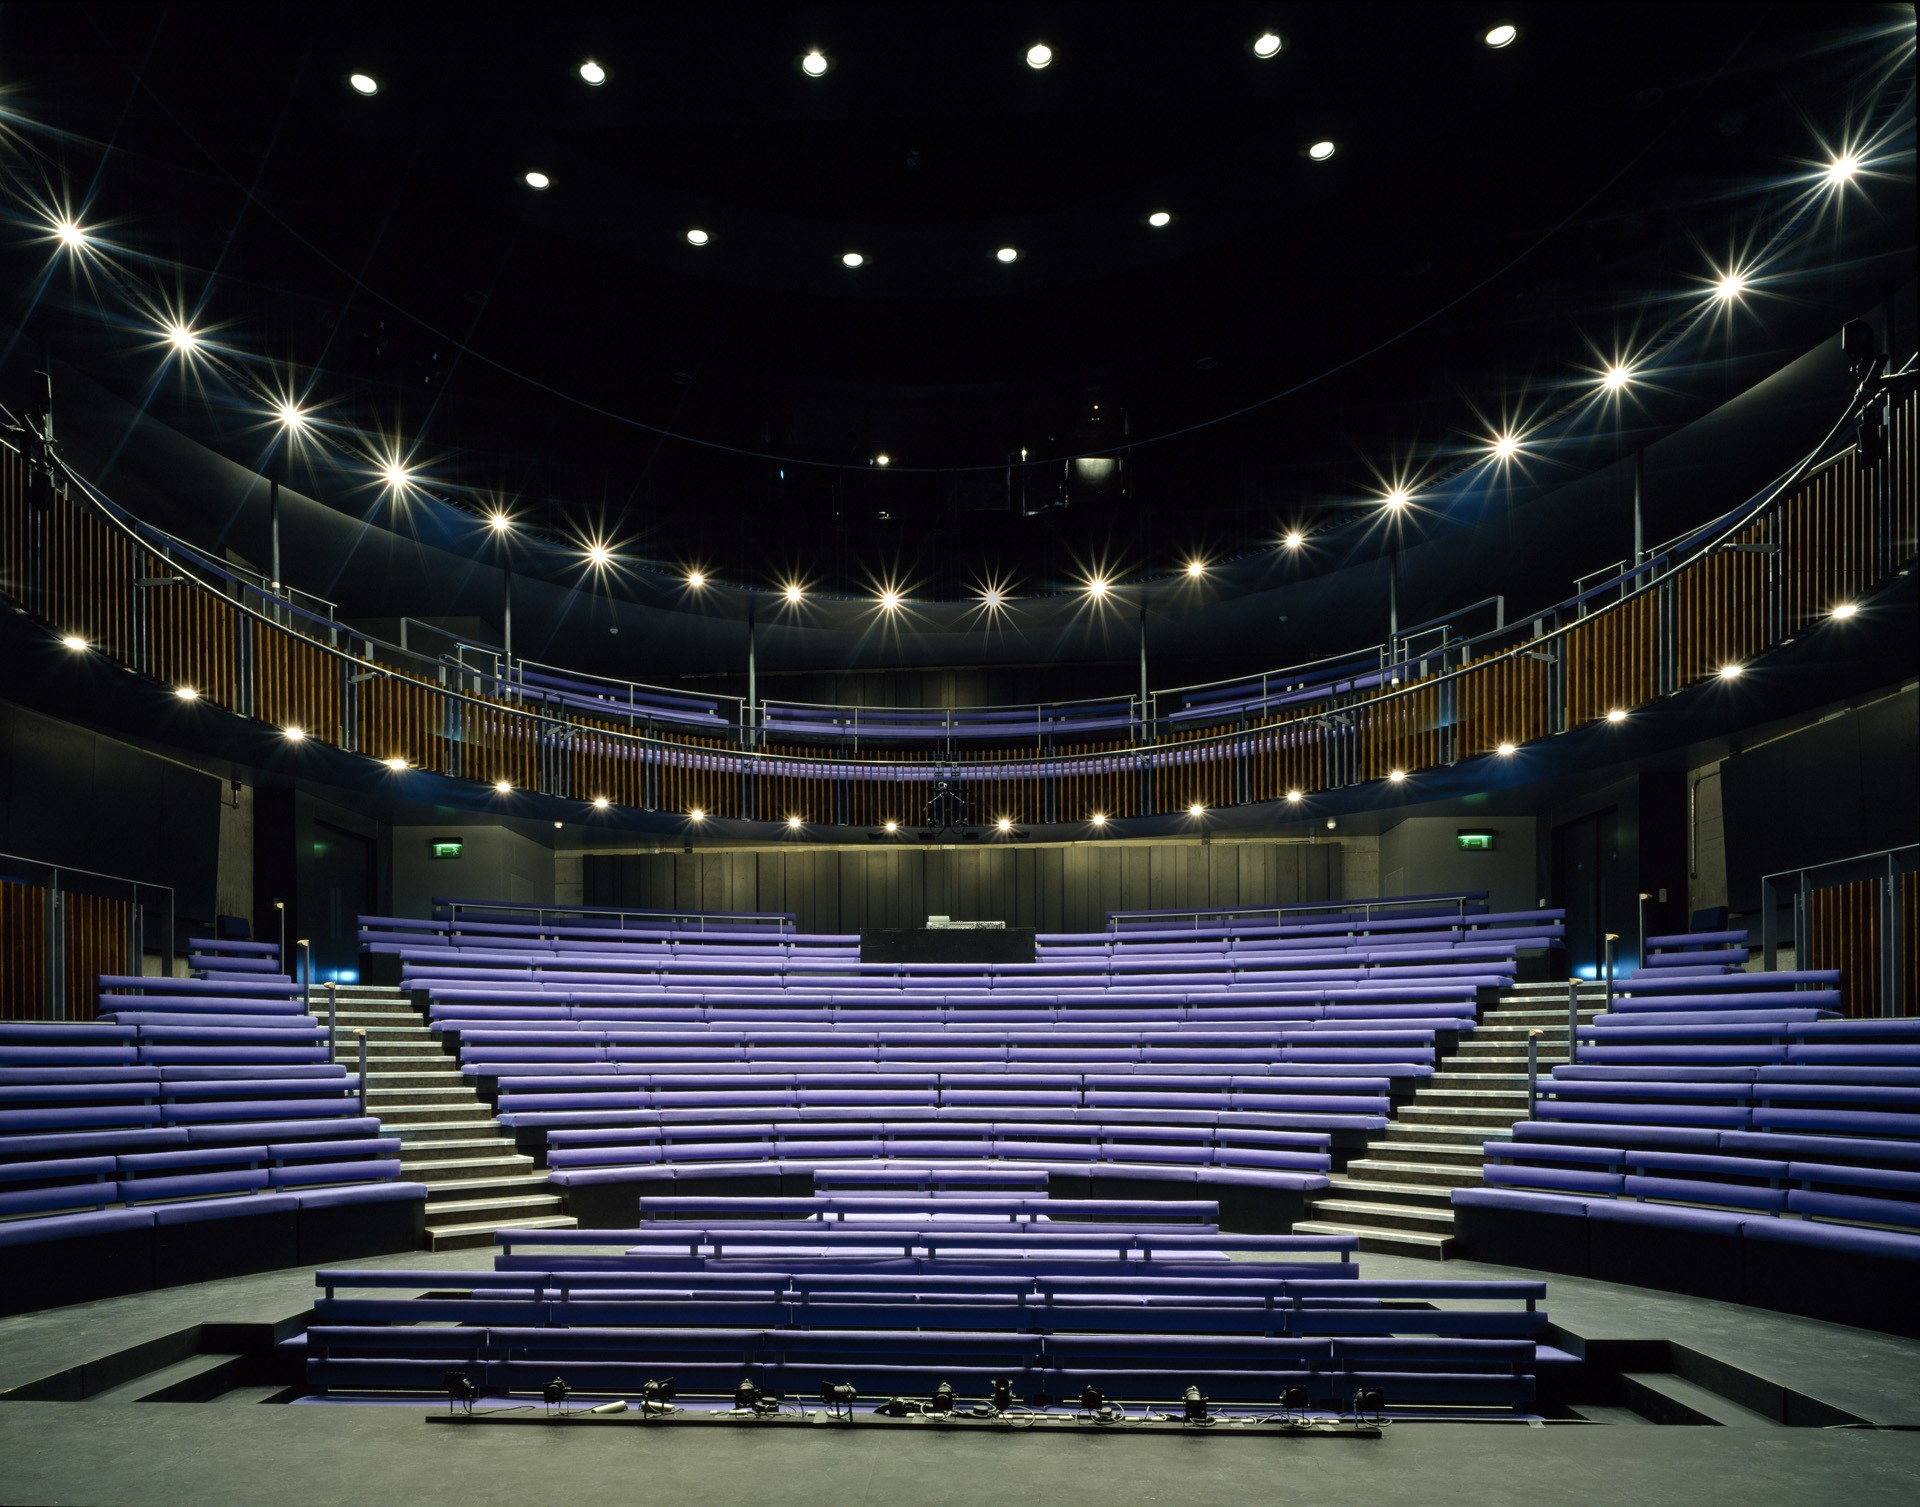 A large auditorium full of tiered seats. The inside of the Unicorn Theatre